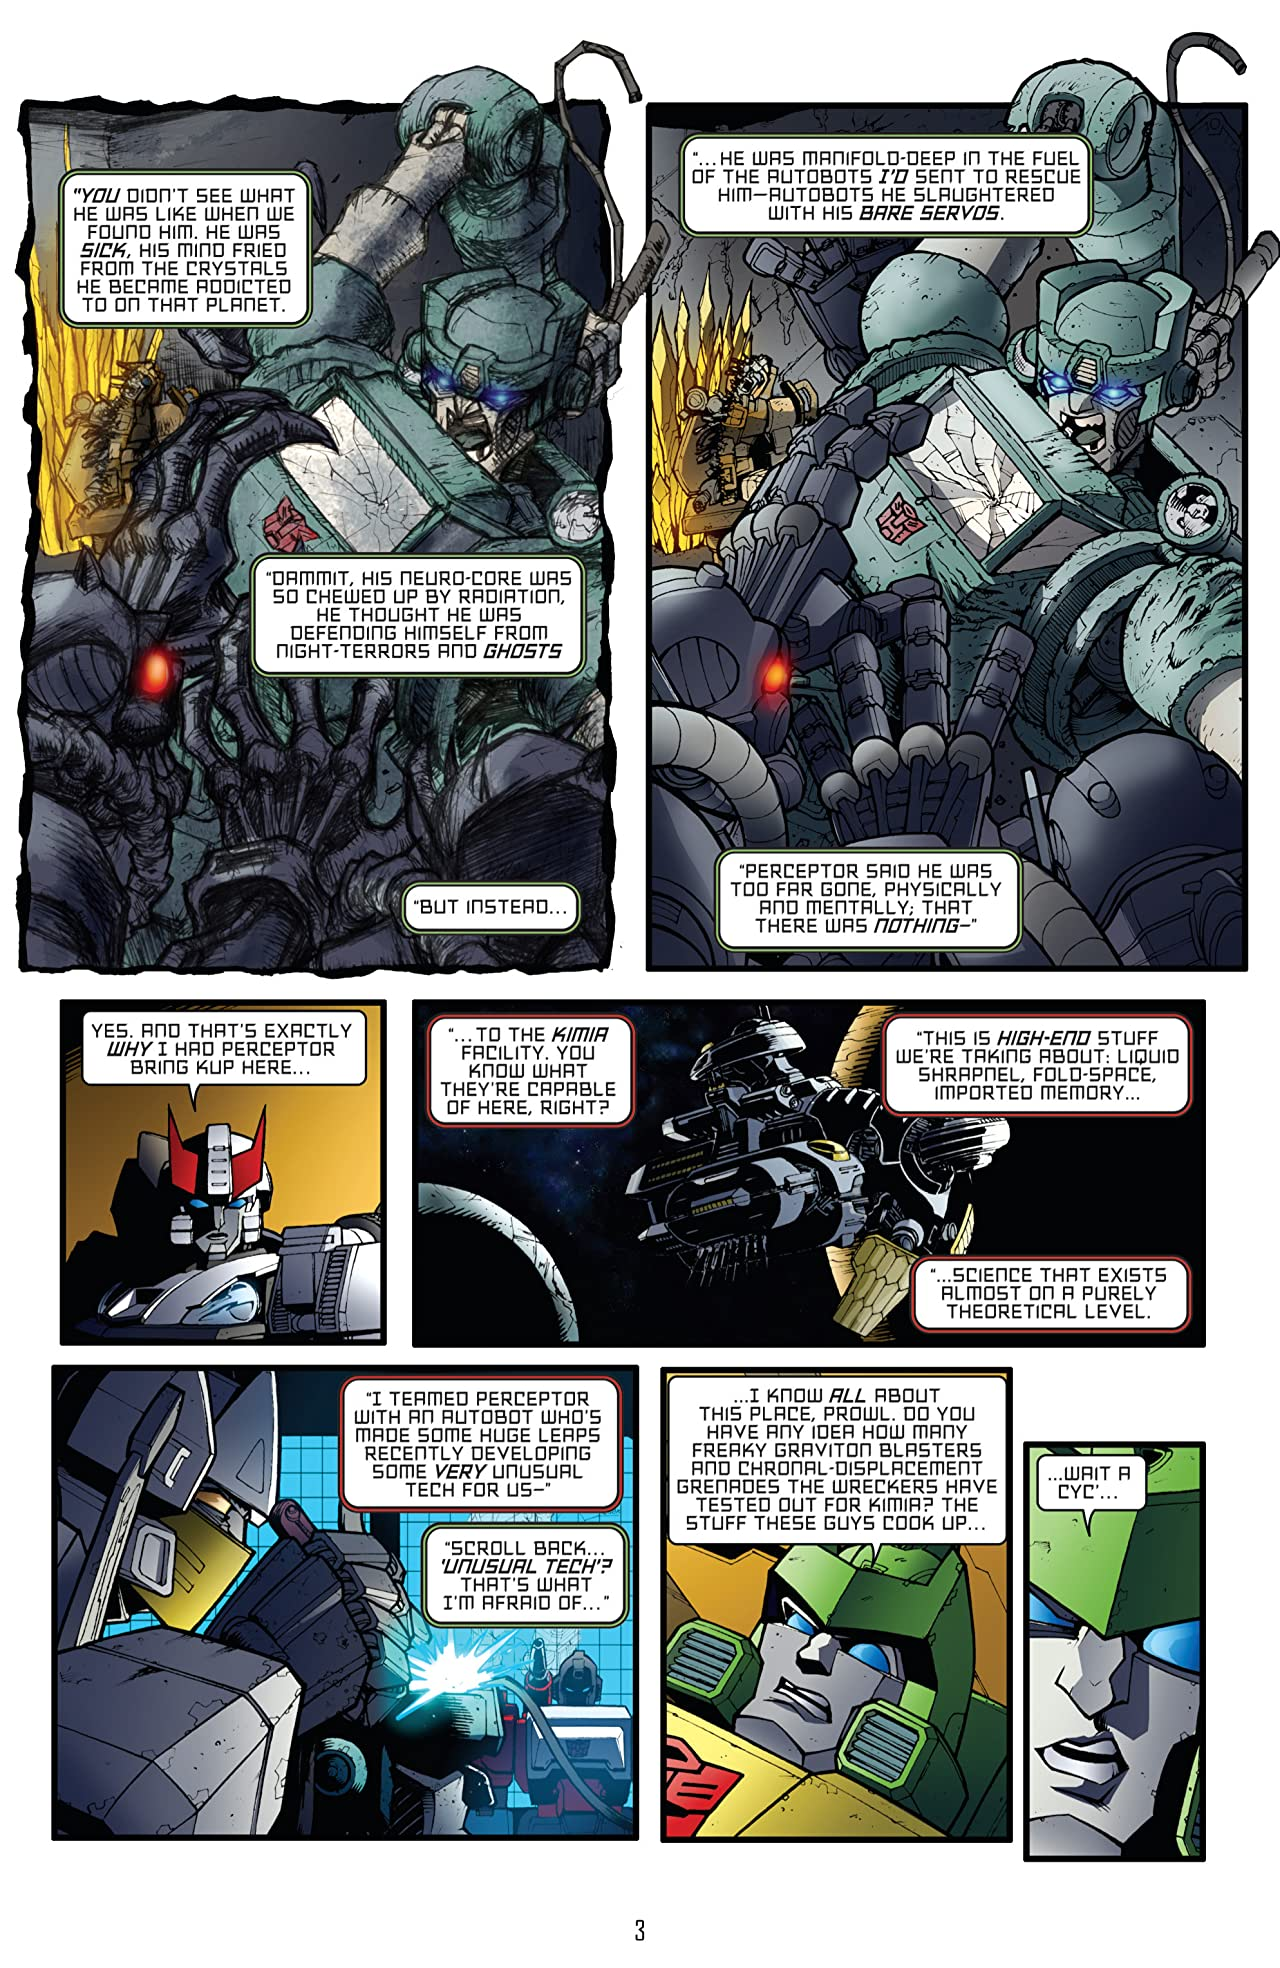 Transformers: All Hail Megatron #15